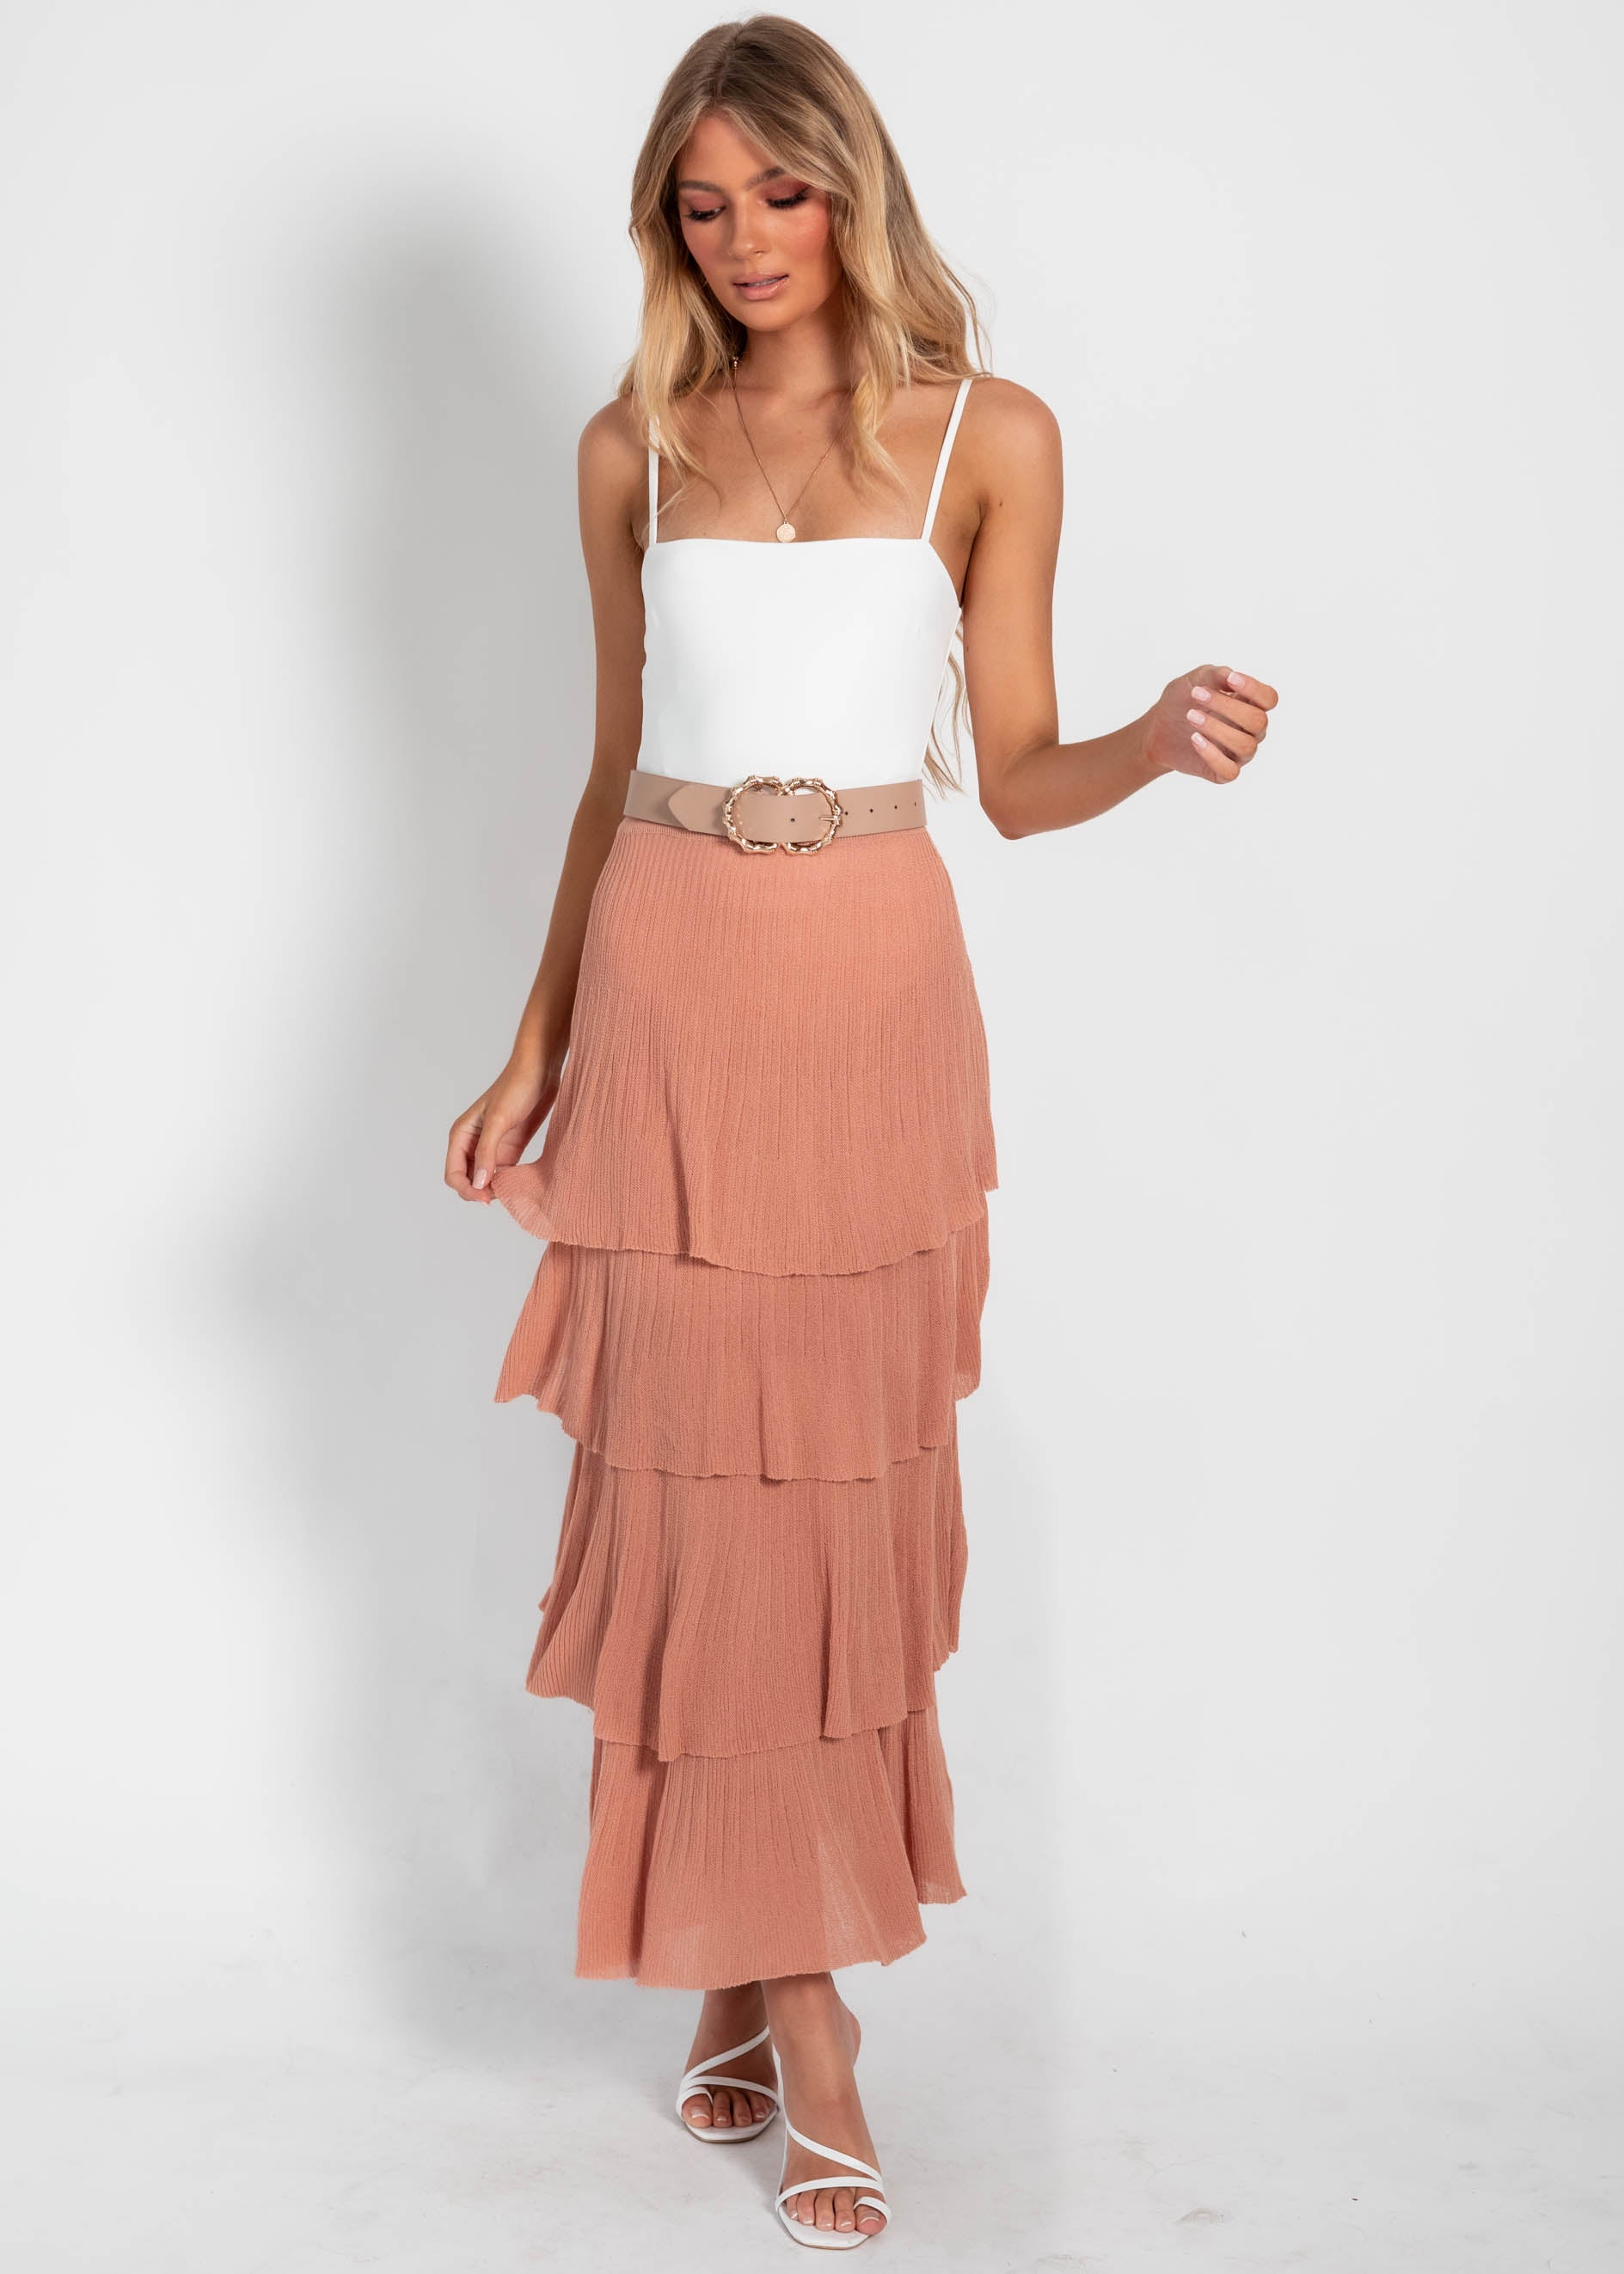 Disillusion Frill Knit Skirt - Rose